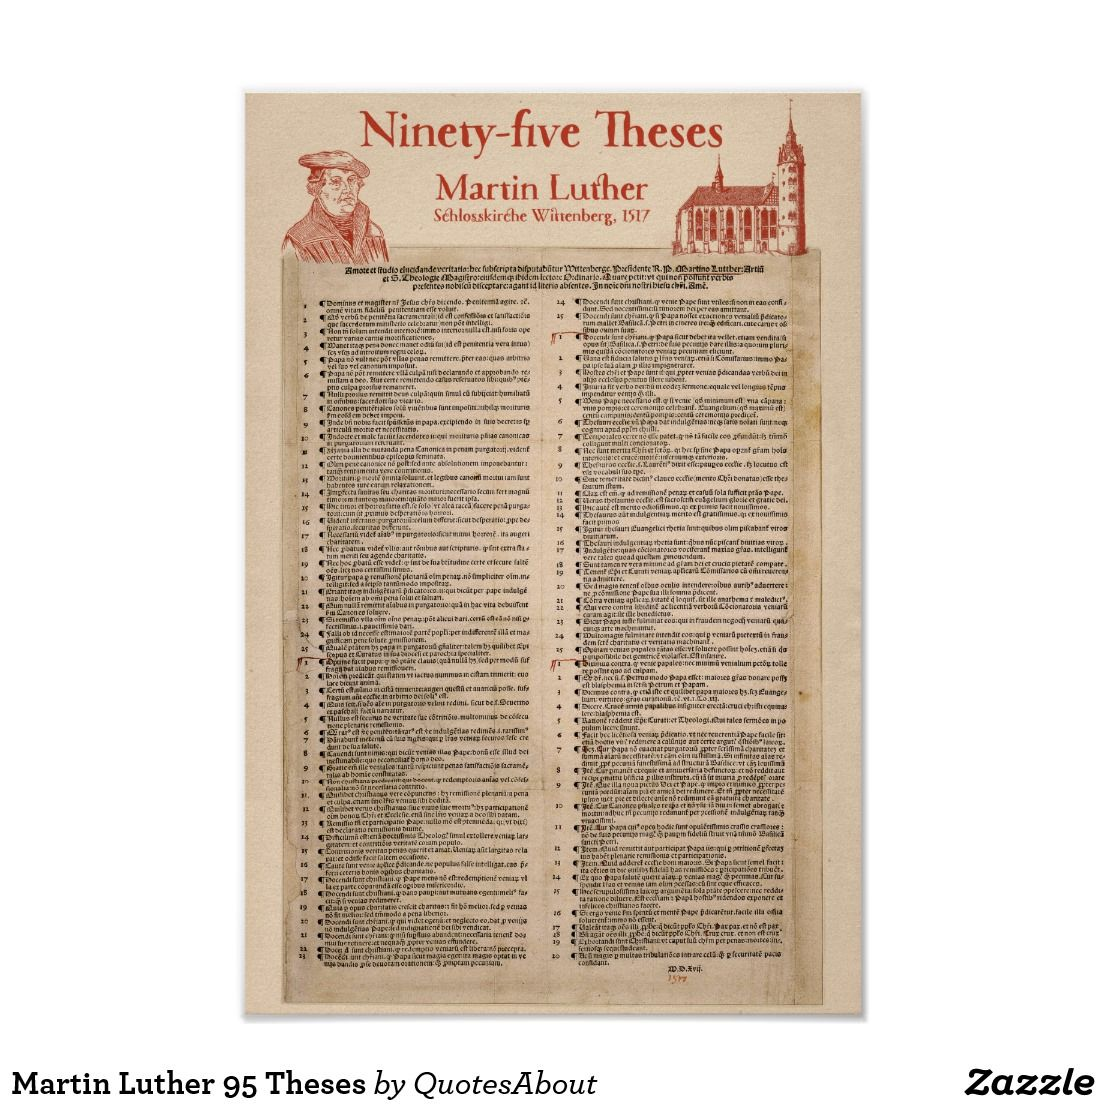 martin luther and the 99 thesis Facts about the 95 theses or the on oct 31, 1517, martin luther mailed the 95 theses to local bishops that they might take action against indulgences.